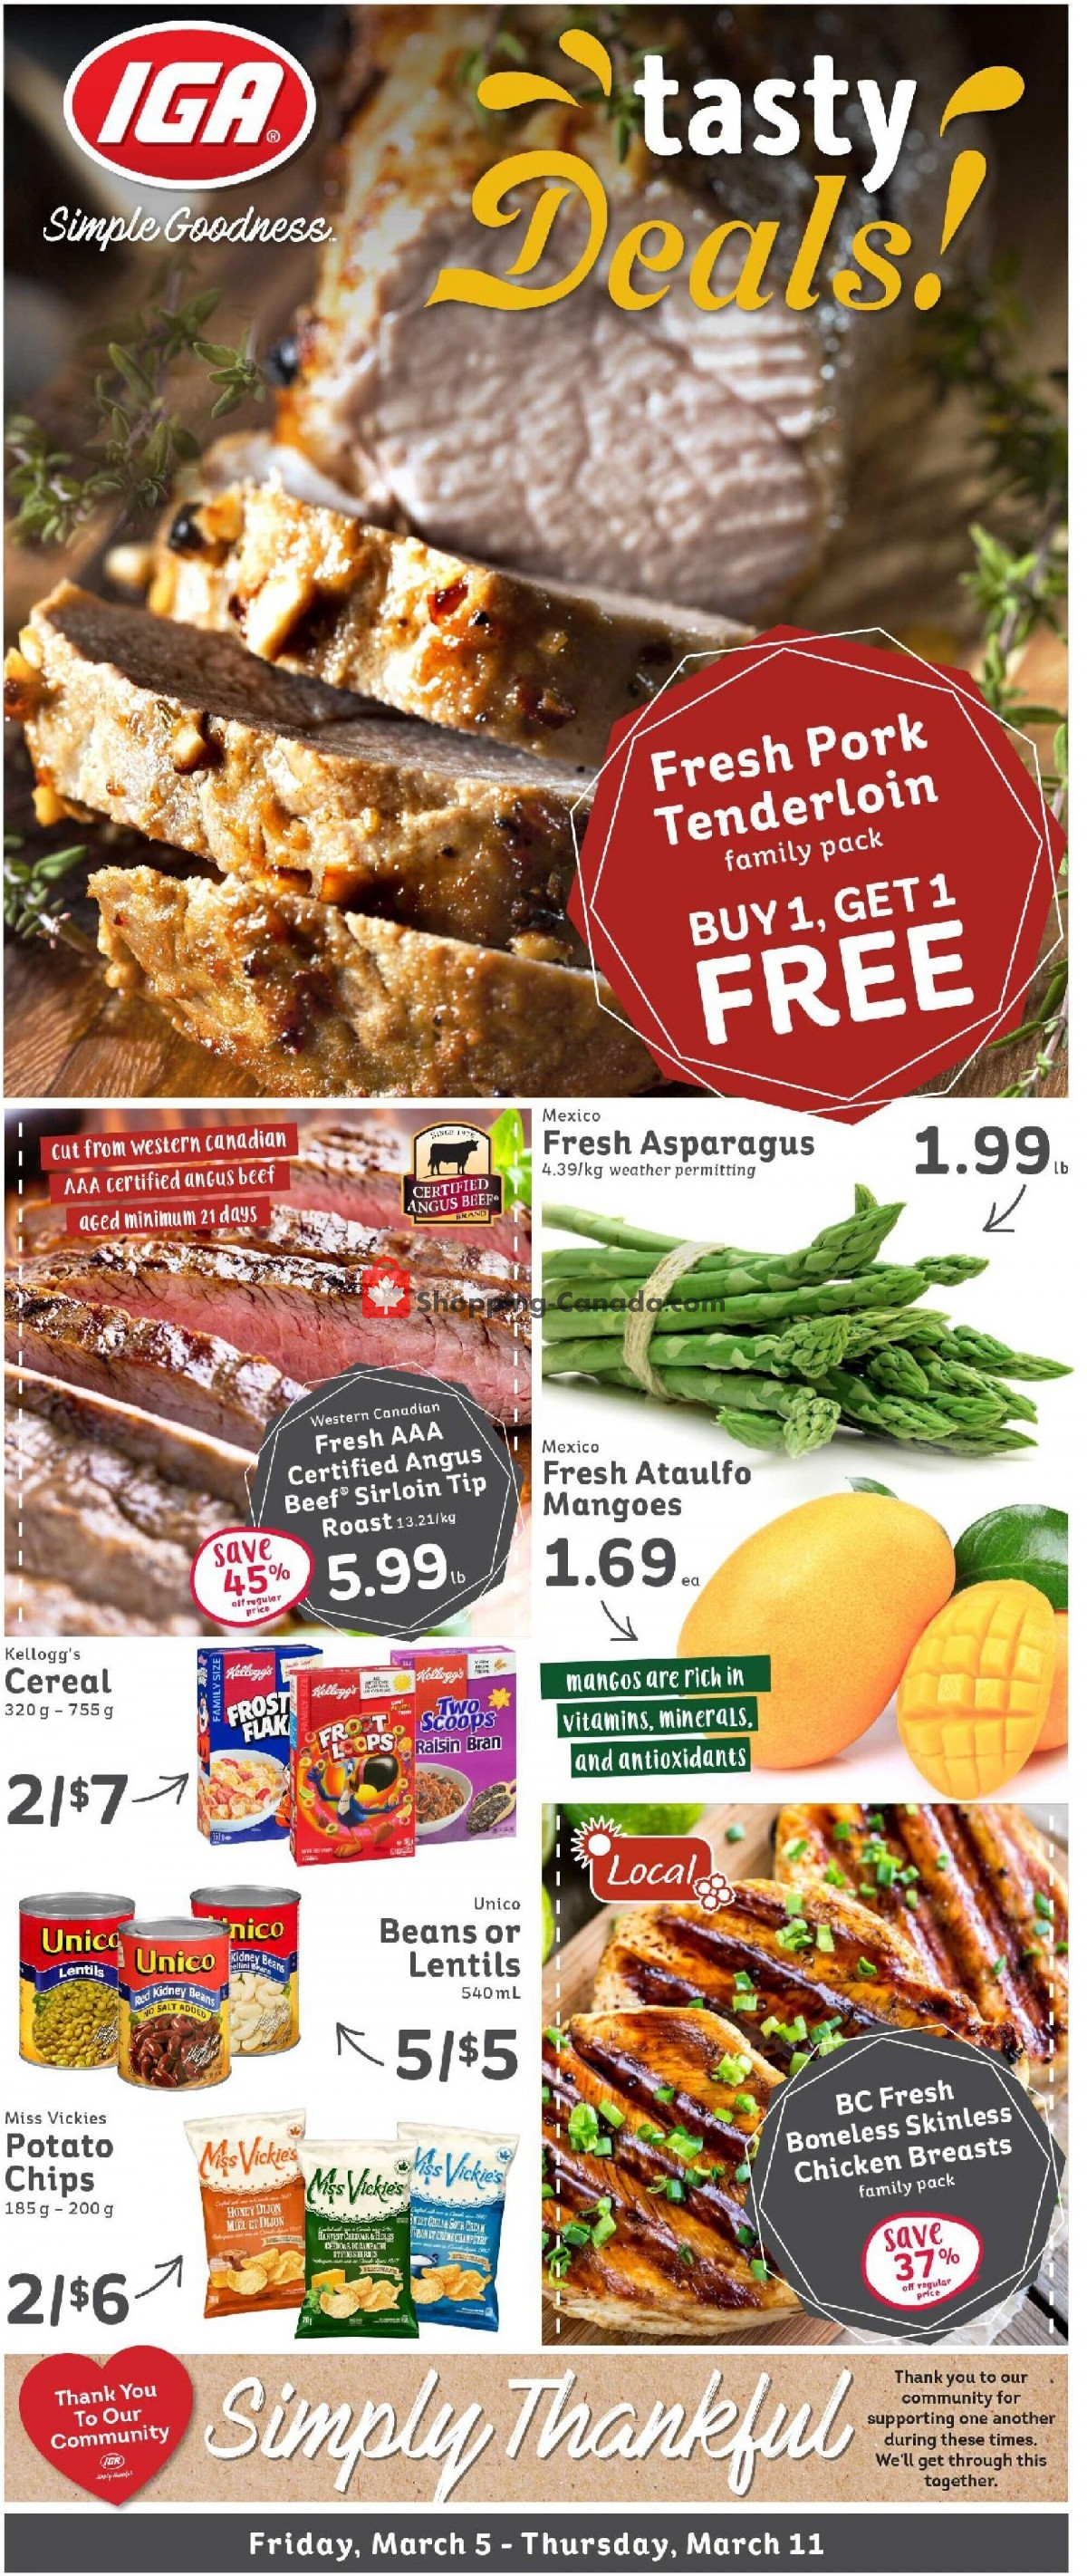 Flyer IGA Extra Canada - from Friday March 5, 2021 to Thursday March 11, 2021